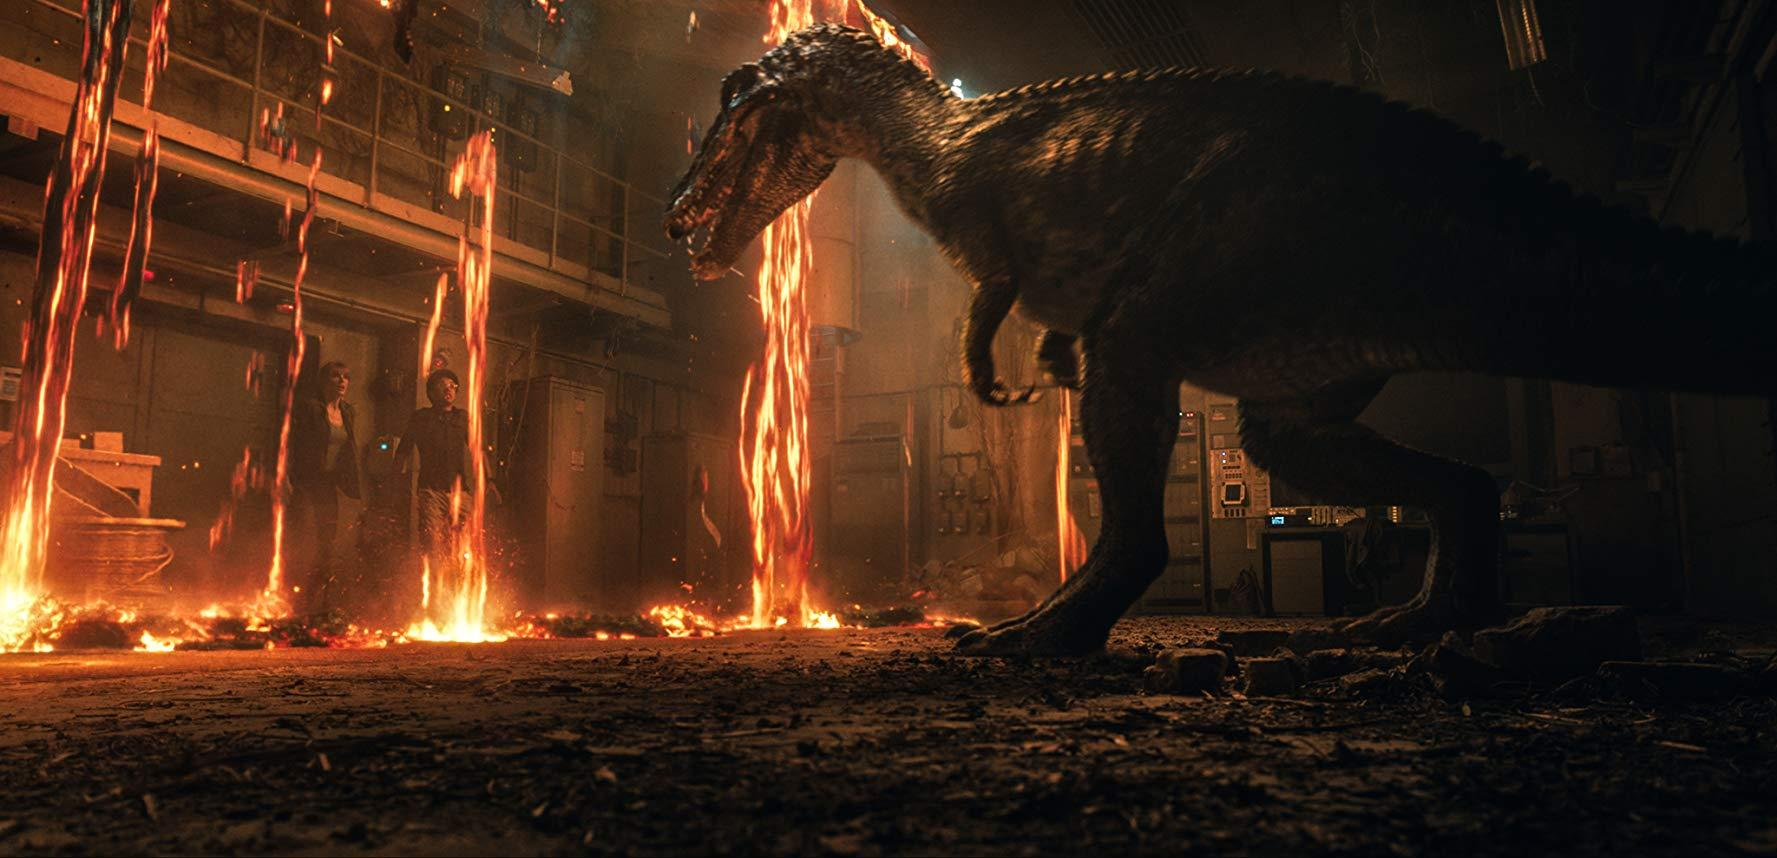 مشاهدة فيلم Jurassic World: Fallen Kingdom (2018) مترجم HD